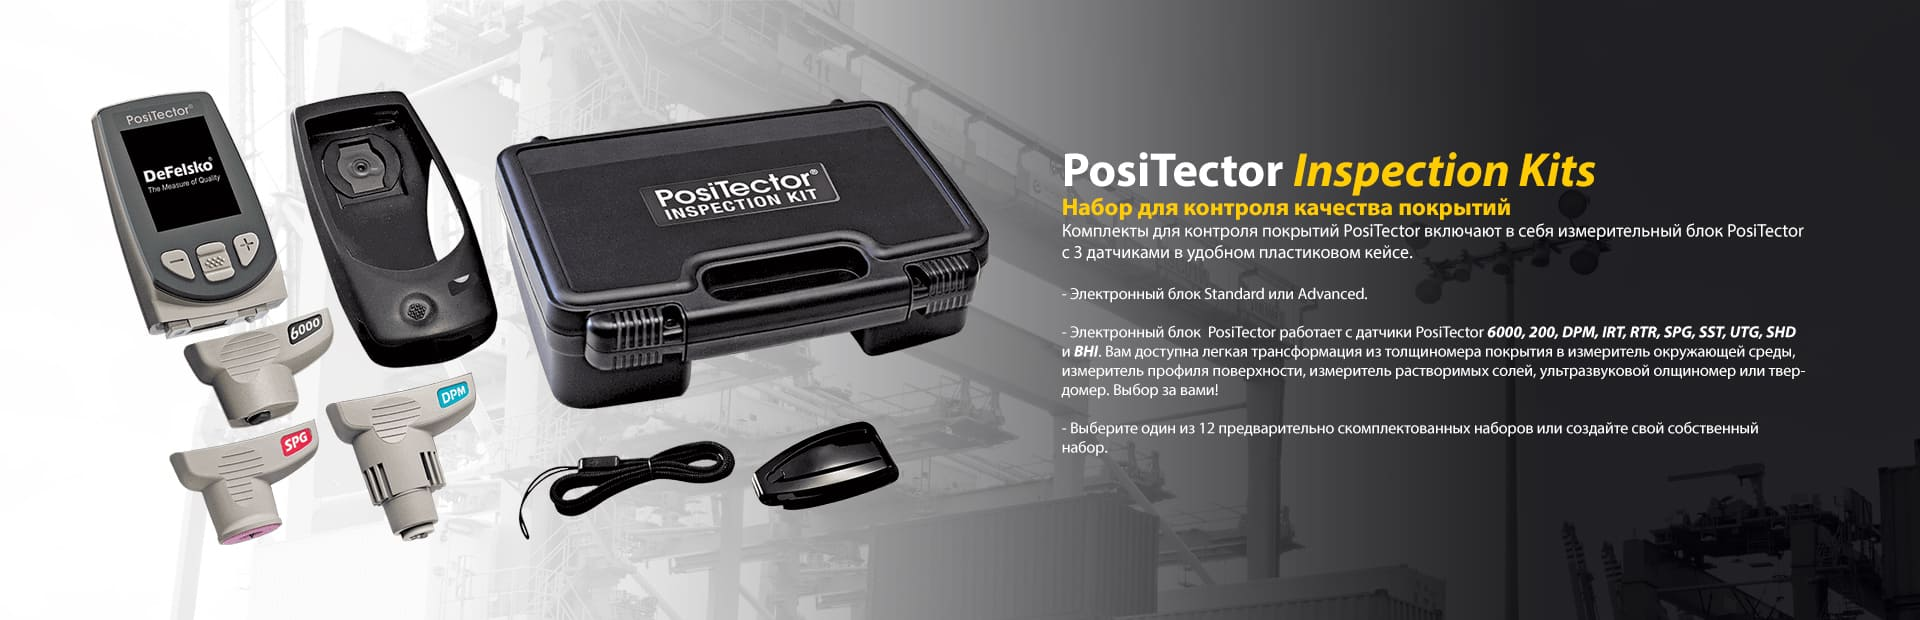 PosiTector Inspections Kits